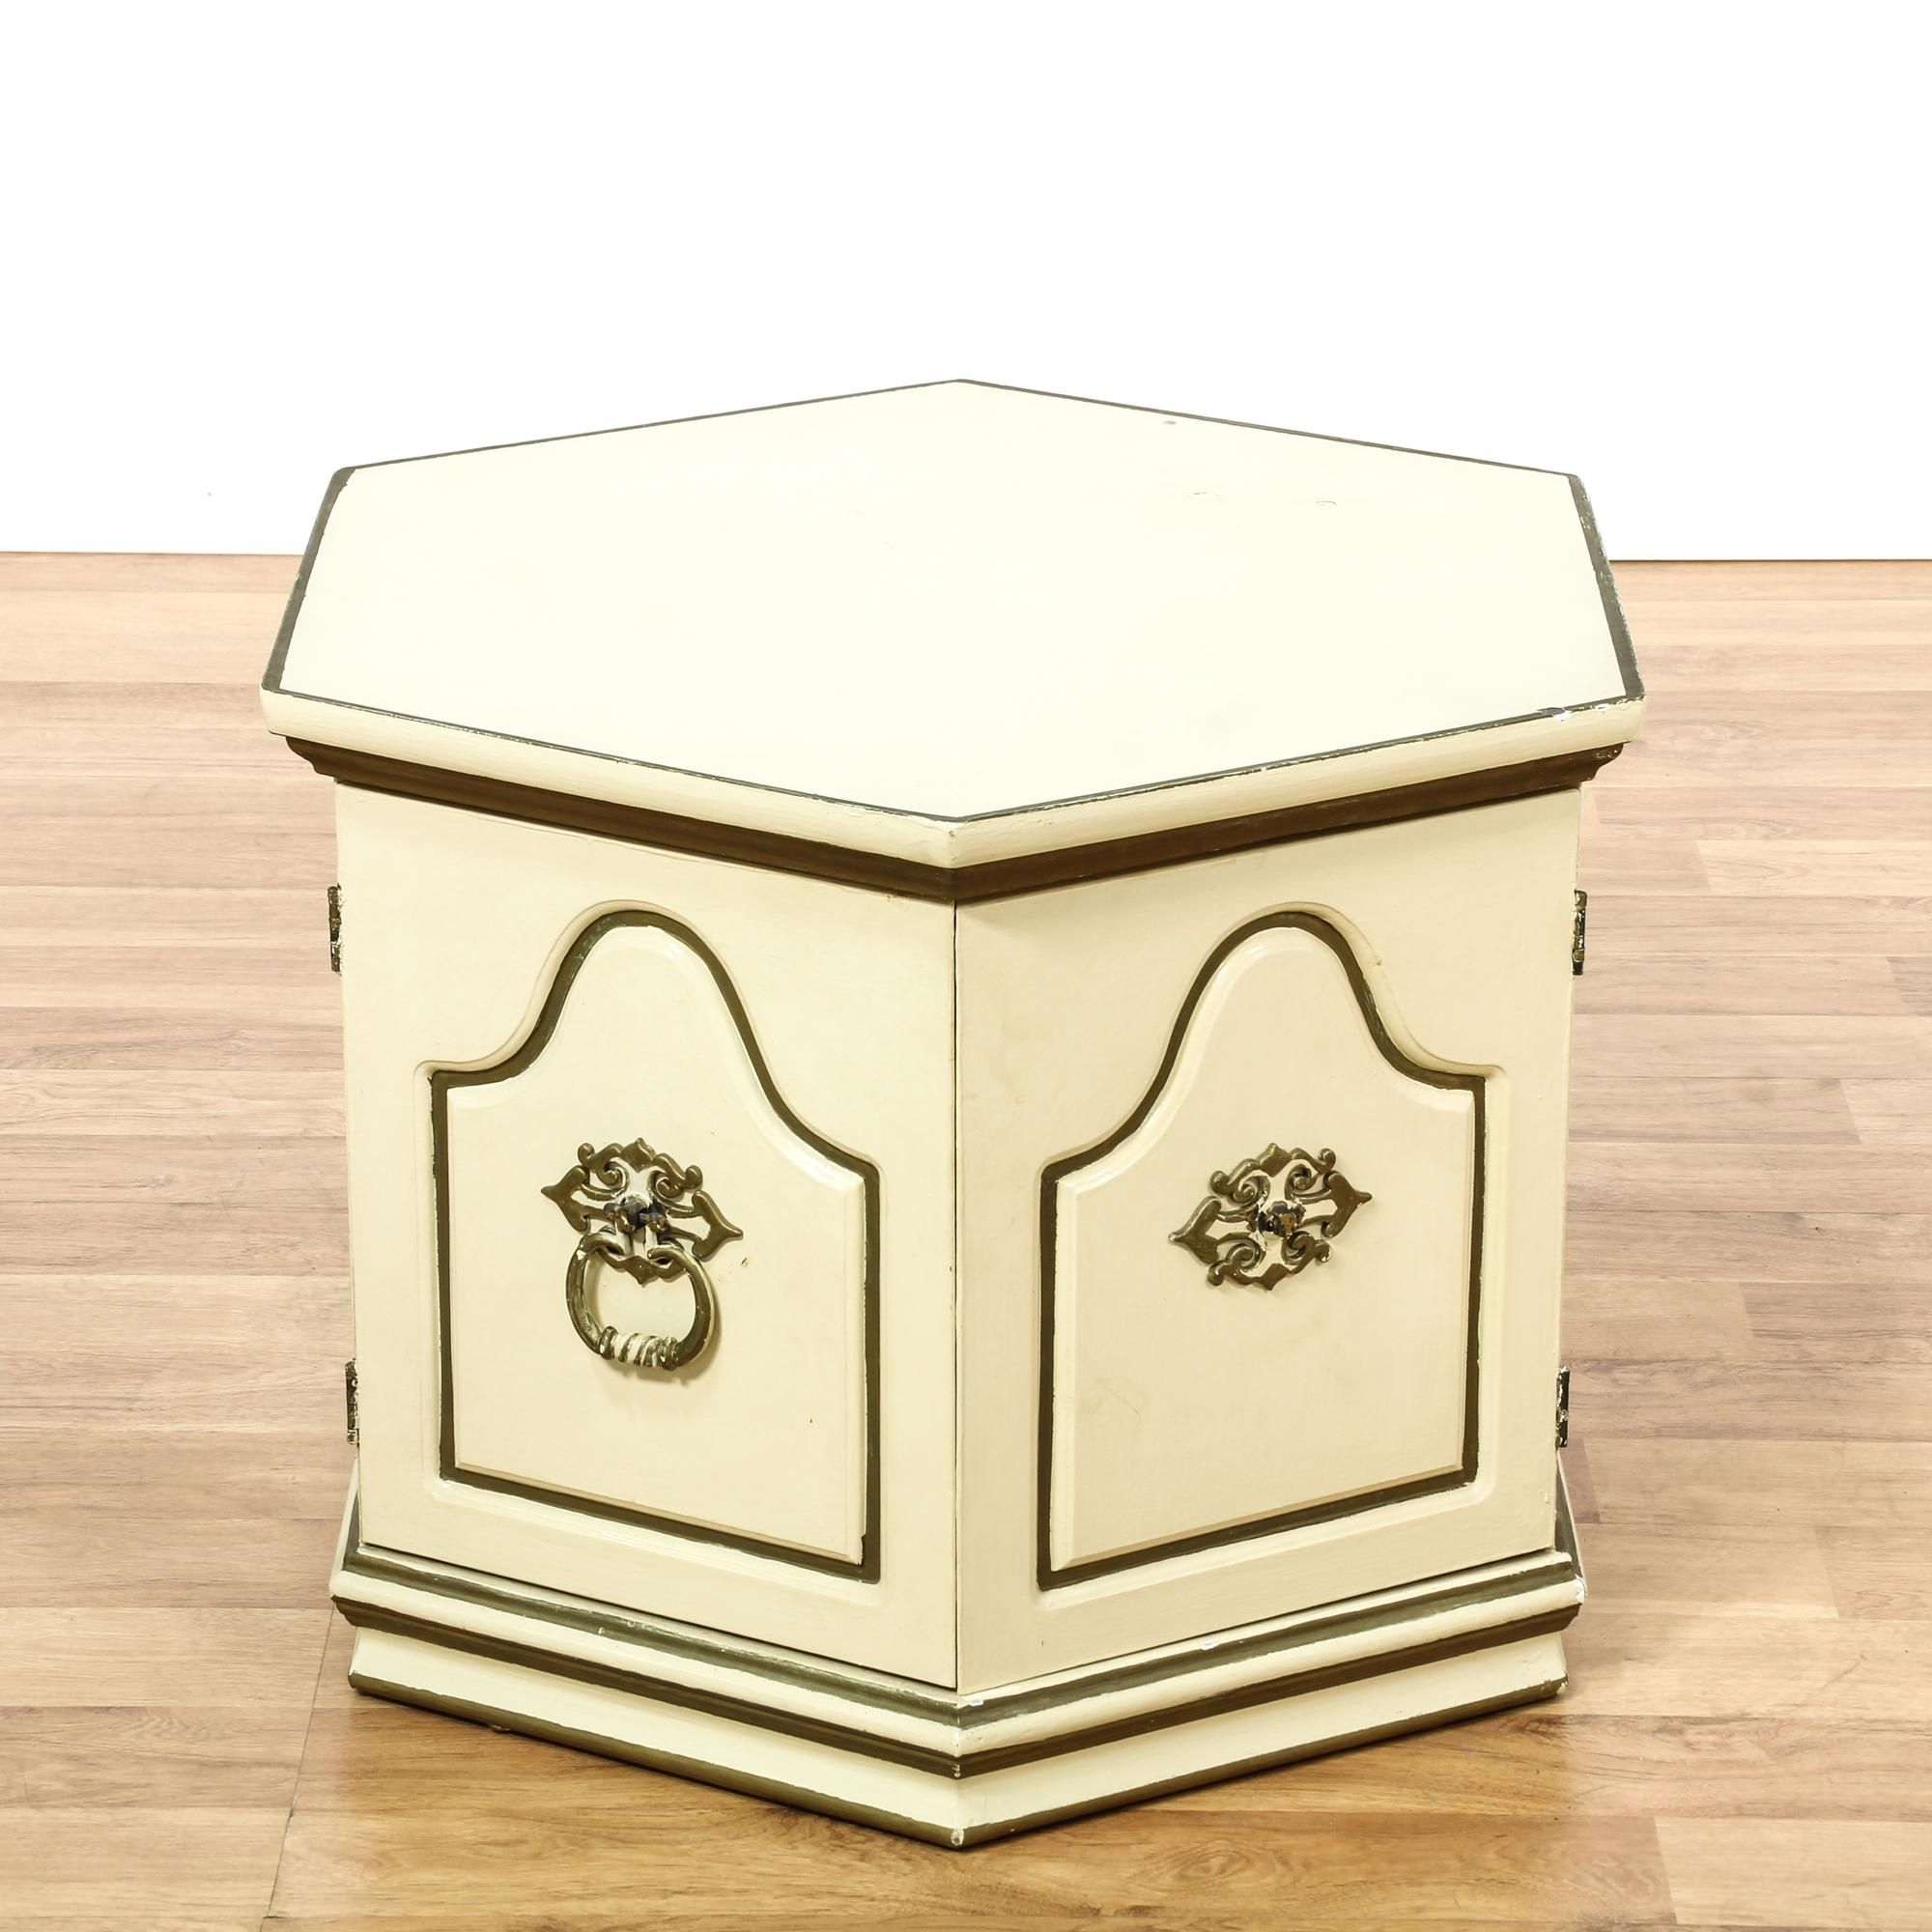 This hexagon end table is featured in a solid wood with a cream finish. This French Provincial side table has a cabinet w/ ample storage space, bronze accents, and steel handle pulls. Perfect for storing books! #european #tables #endtable #sandiegovintage #vintagefurniture